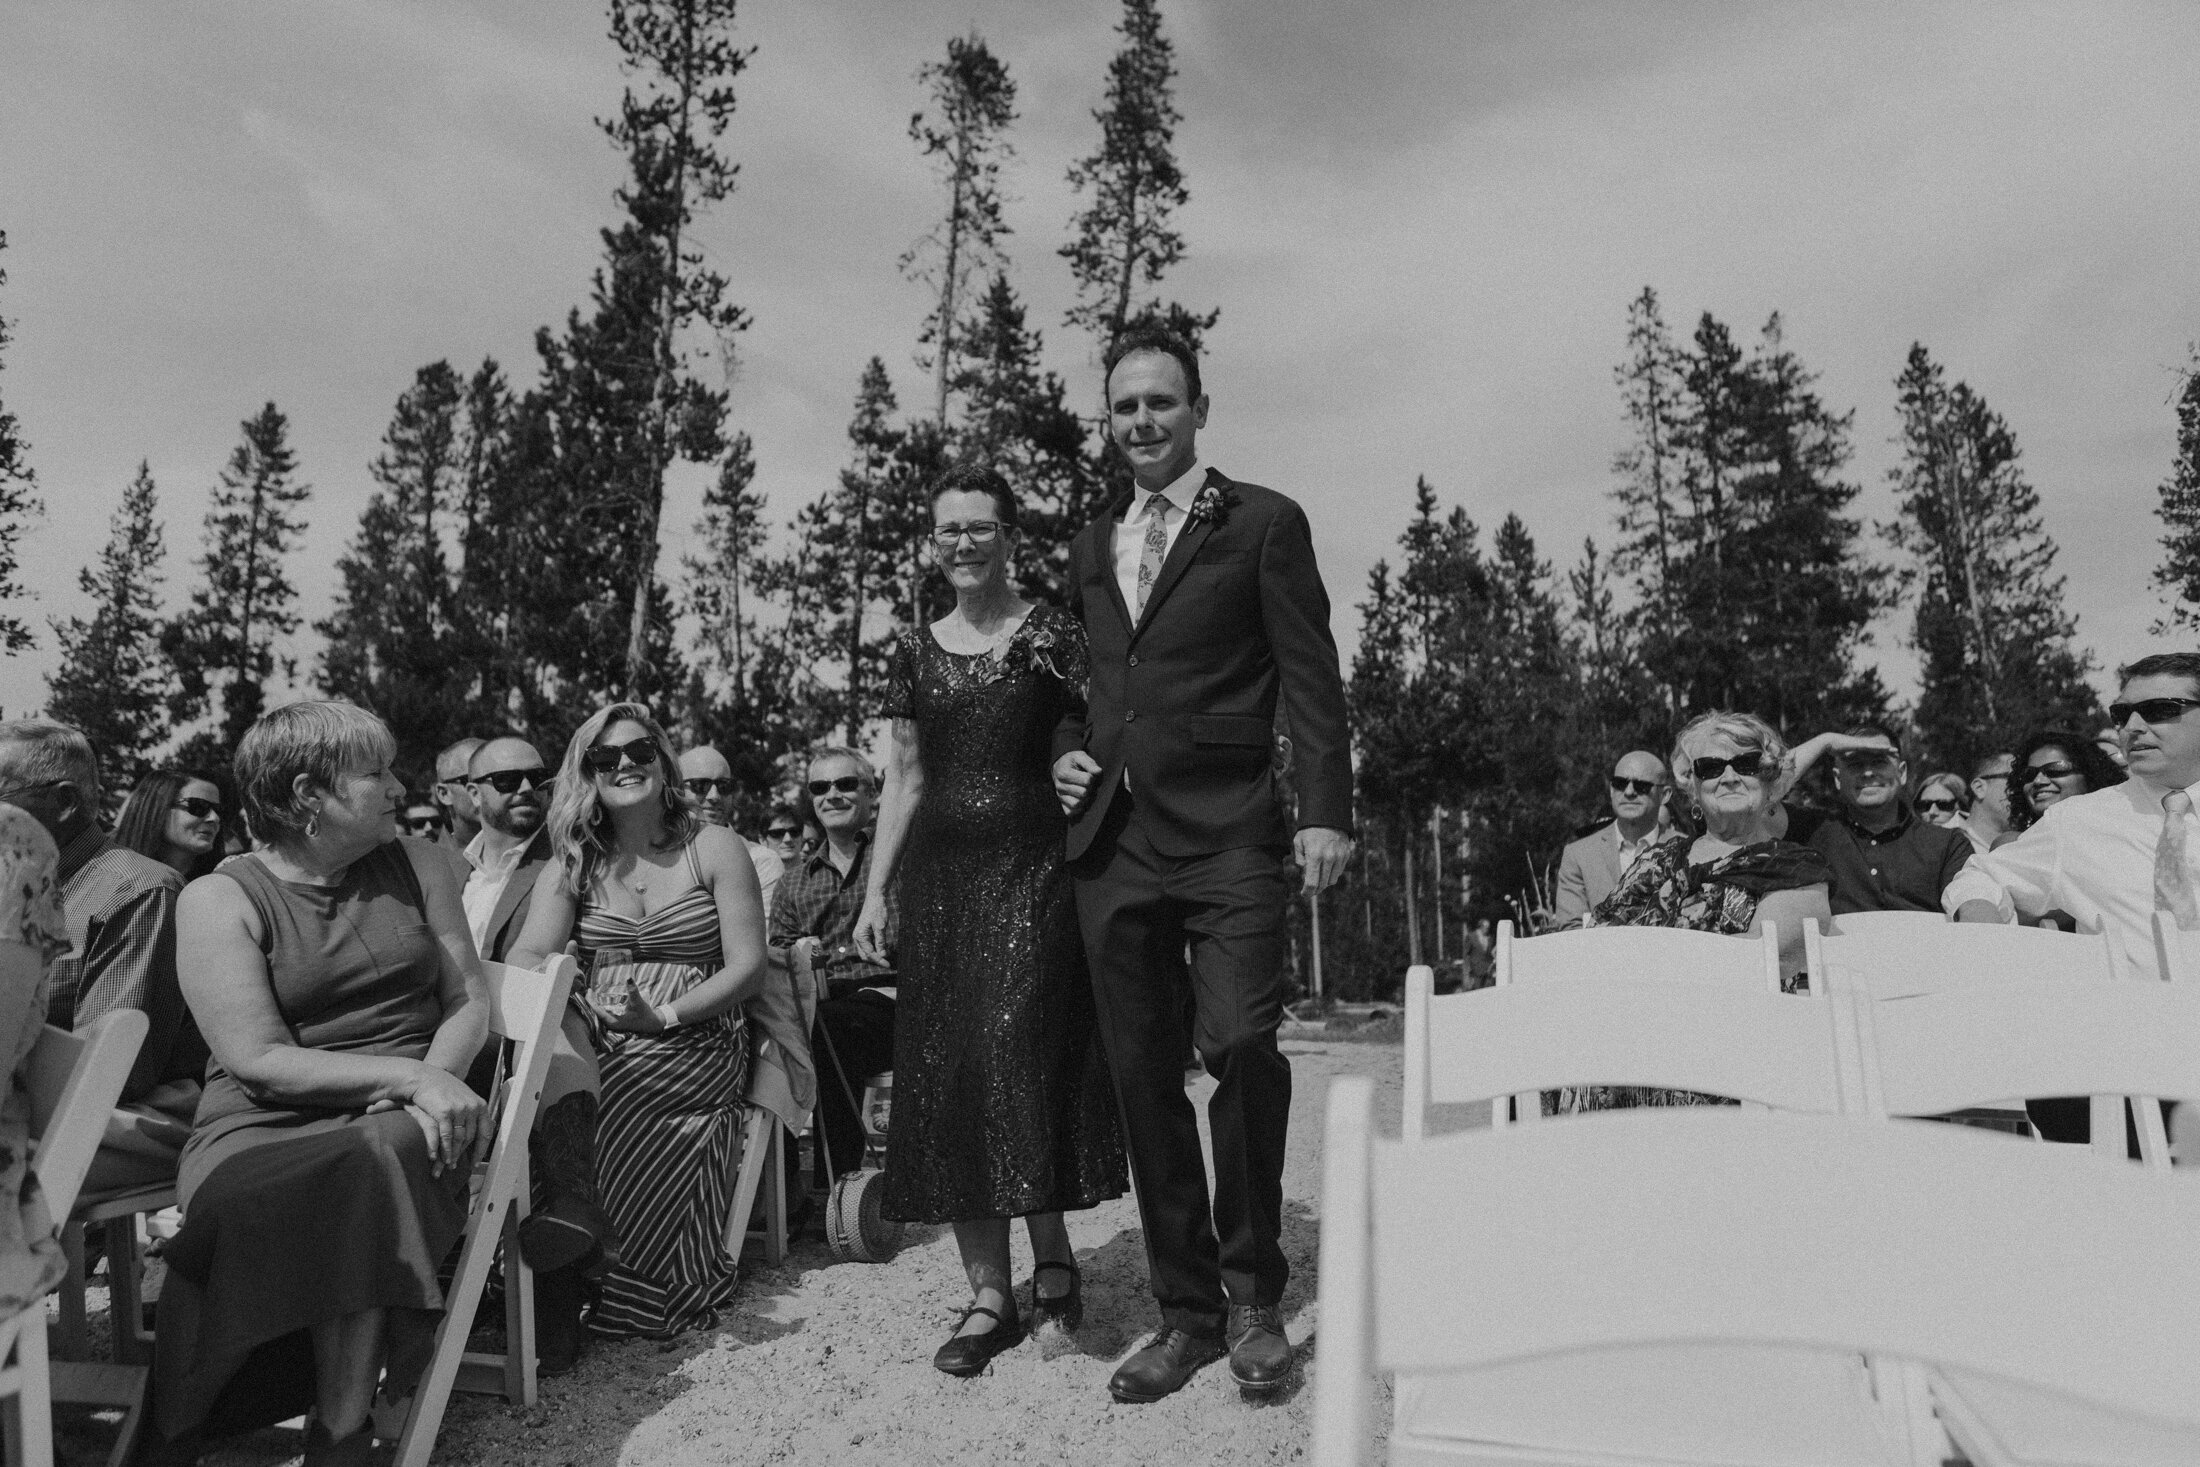 redfish-lake-wedding-stanley-idaho-b_A-49.jpg